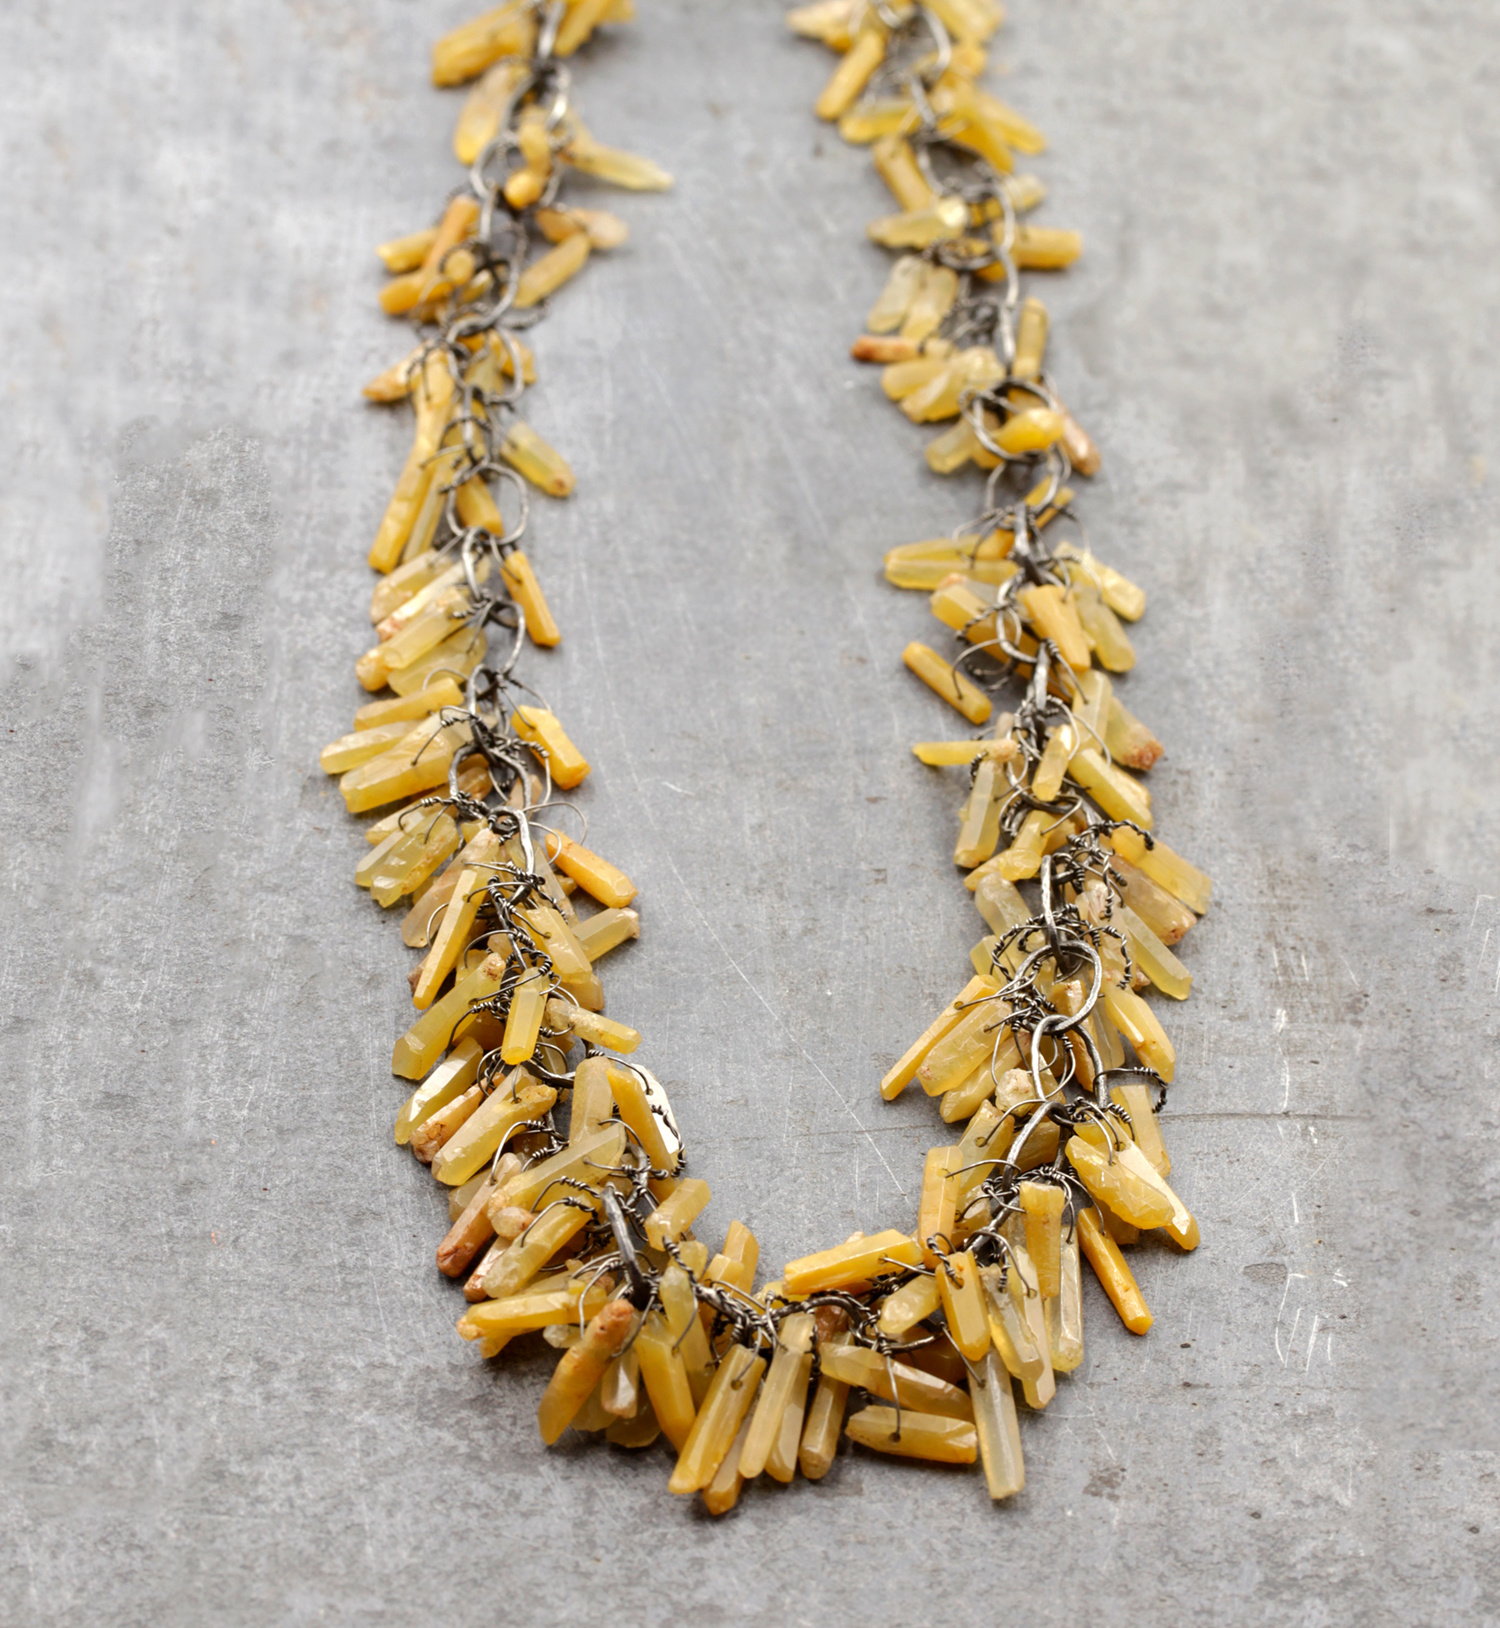 Necklace by Disa Allsopp